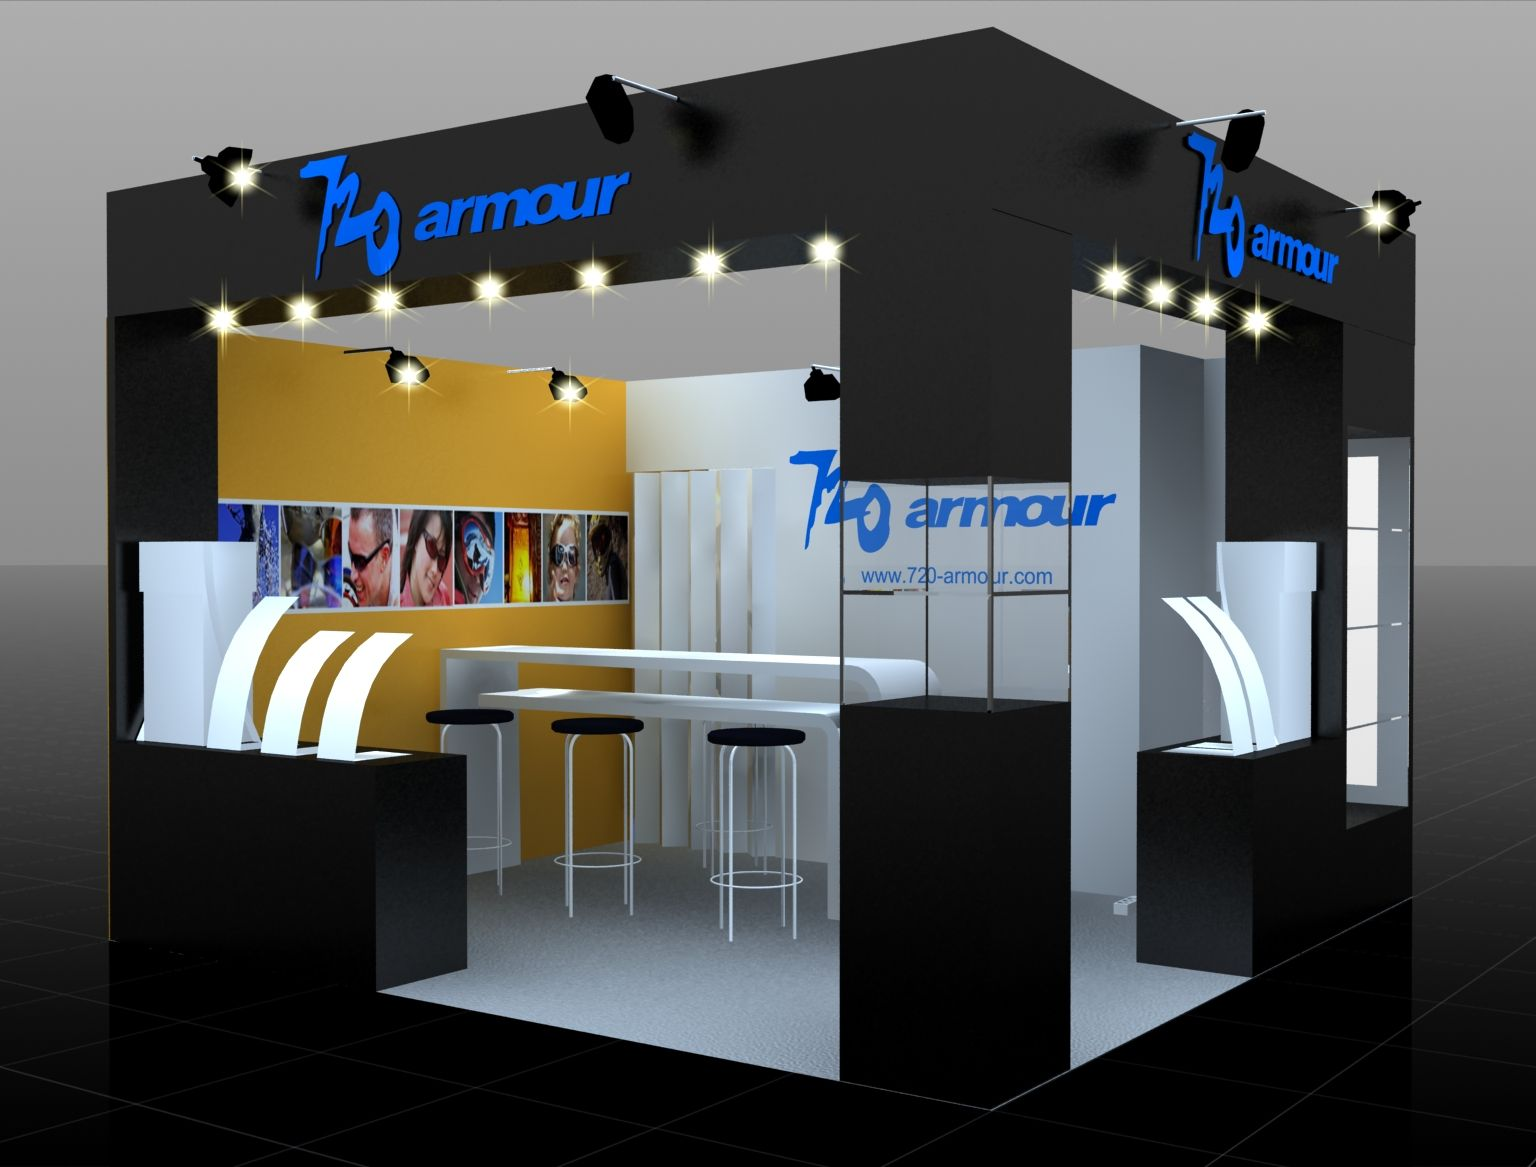 Simple Exhibition Stand Out : Trade show booth layout design image